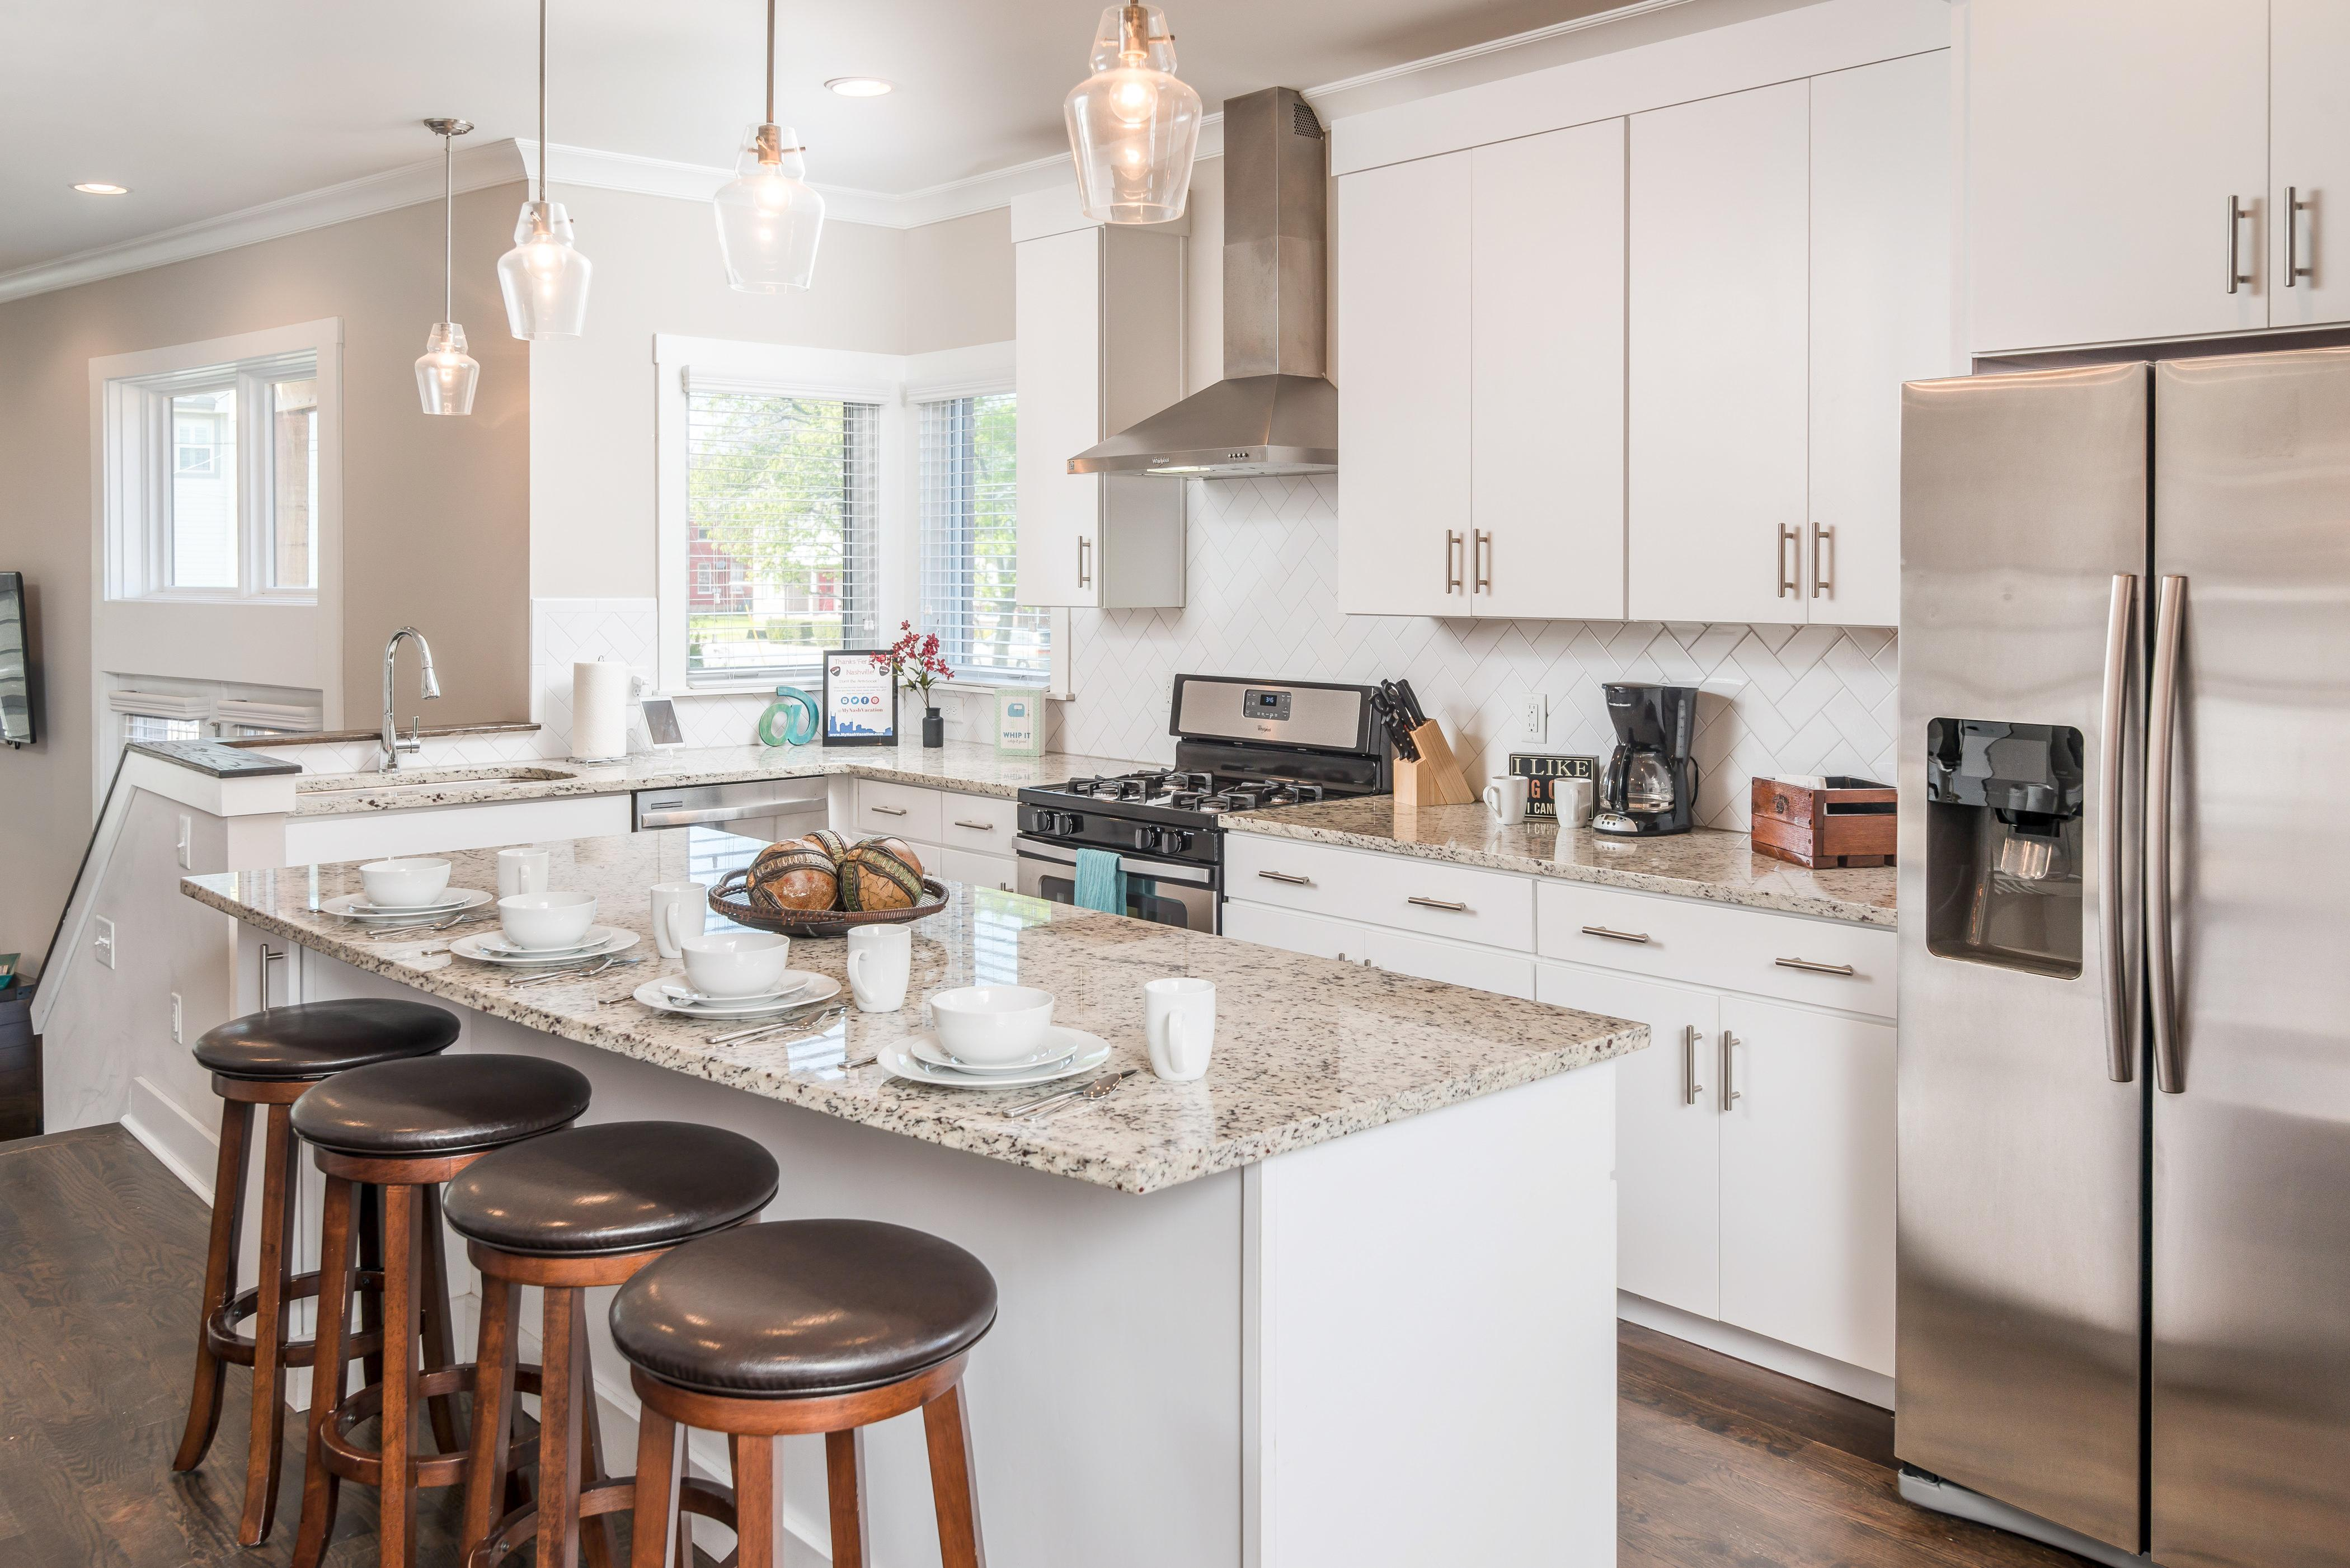 A chef's kitchen is full of luxury touches, including granite countertops, a gas range, and all new stainless steel appliances.